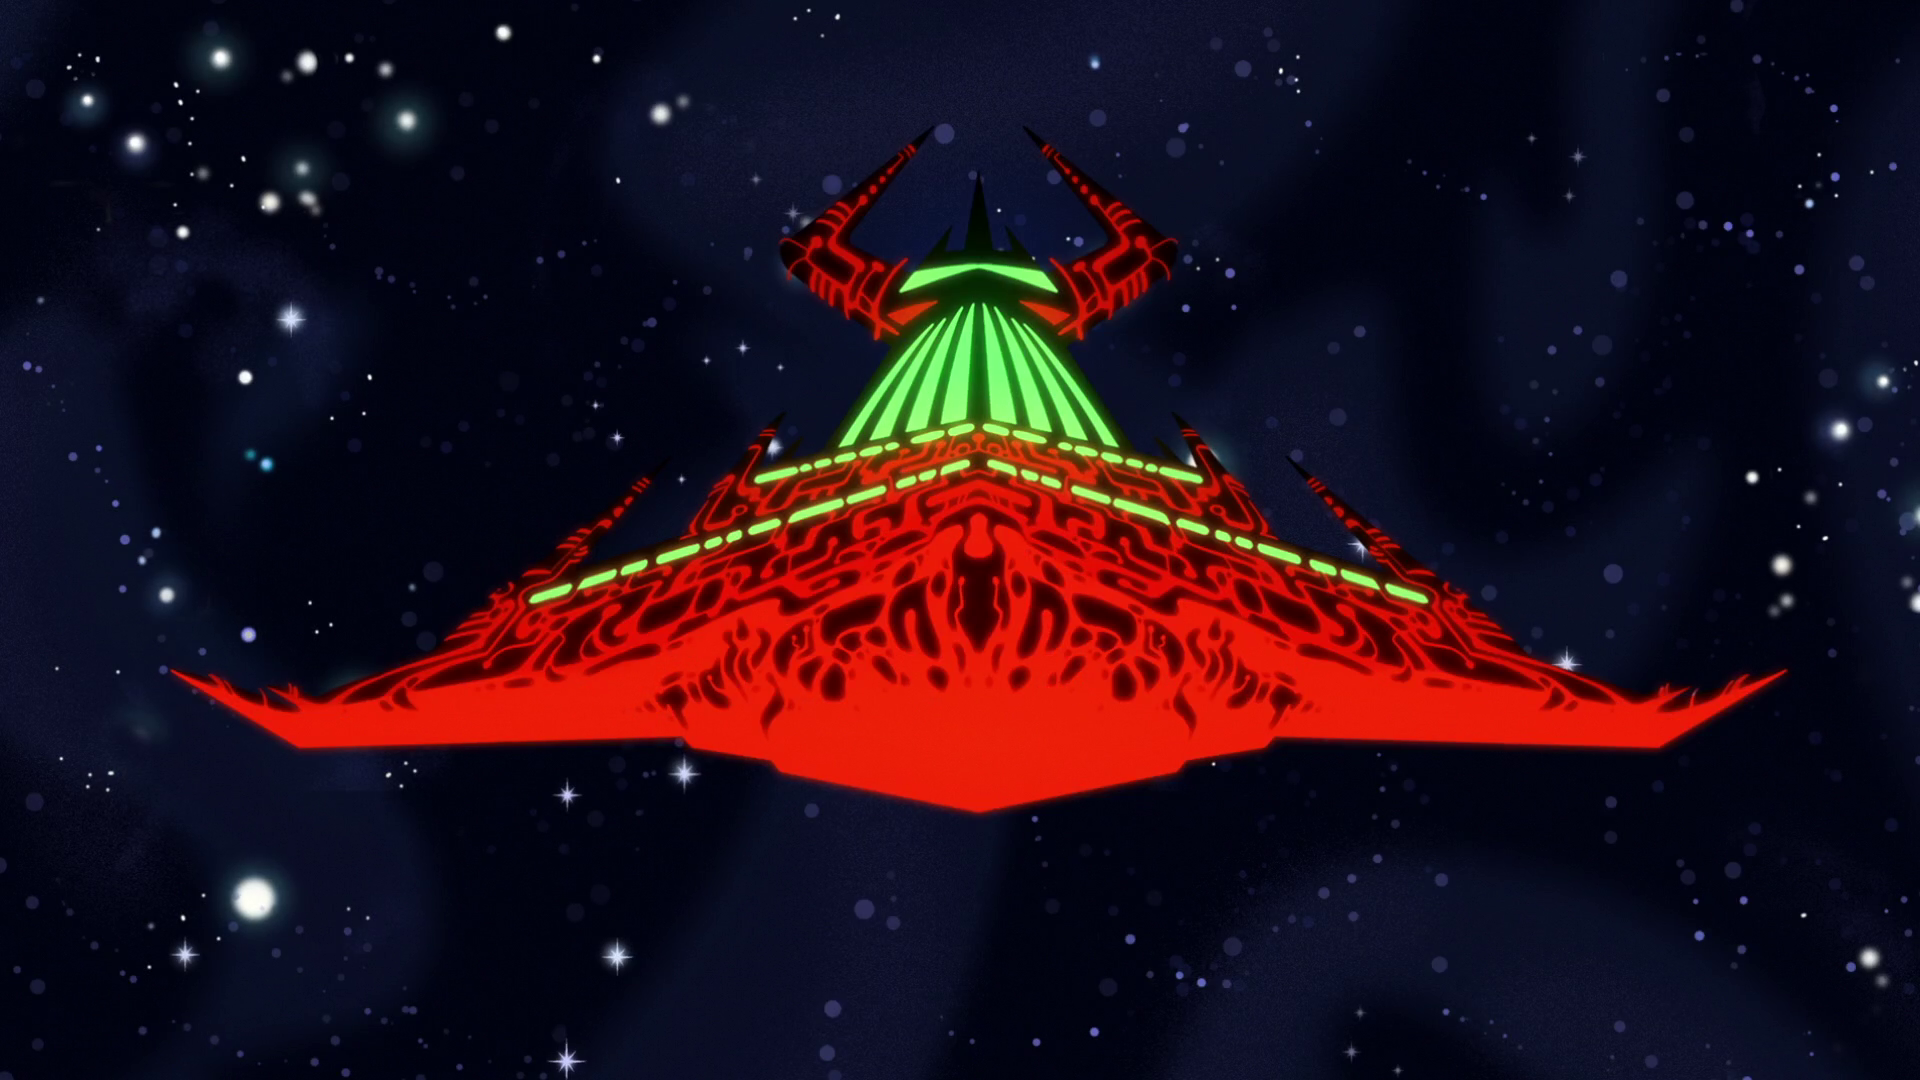 Lord Dominator's mothership